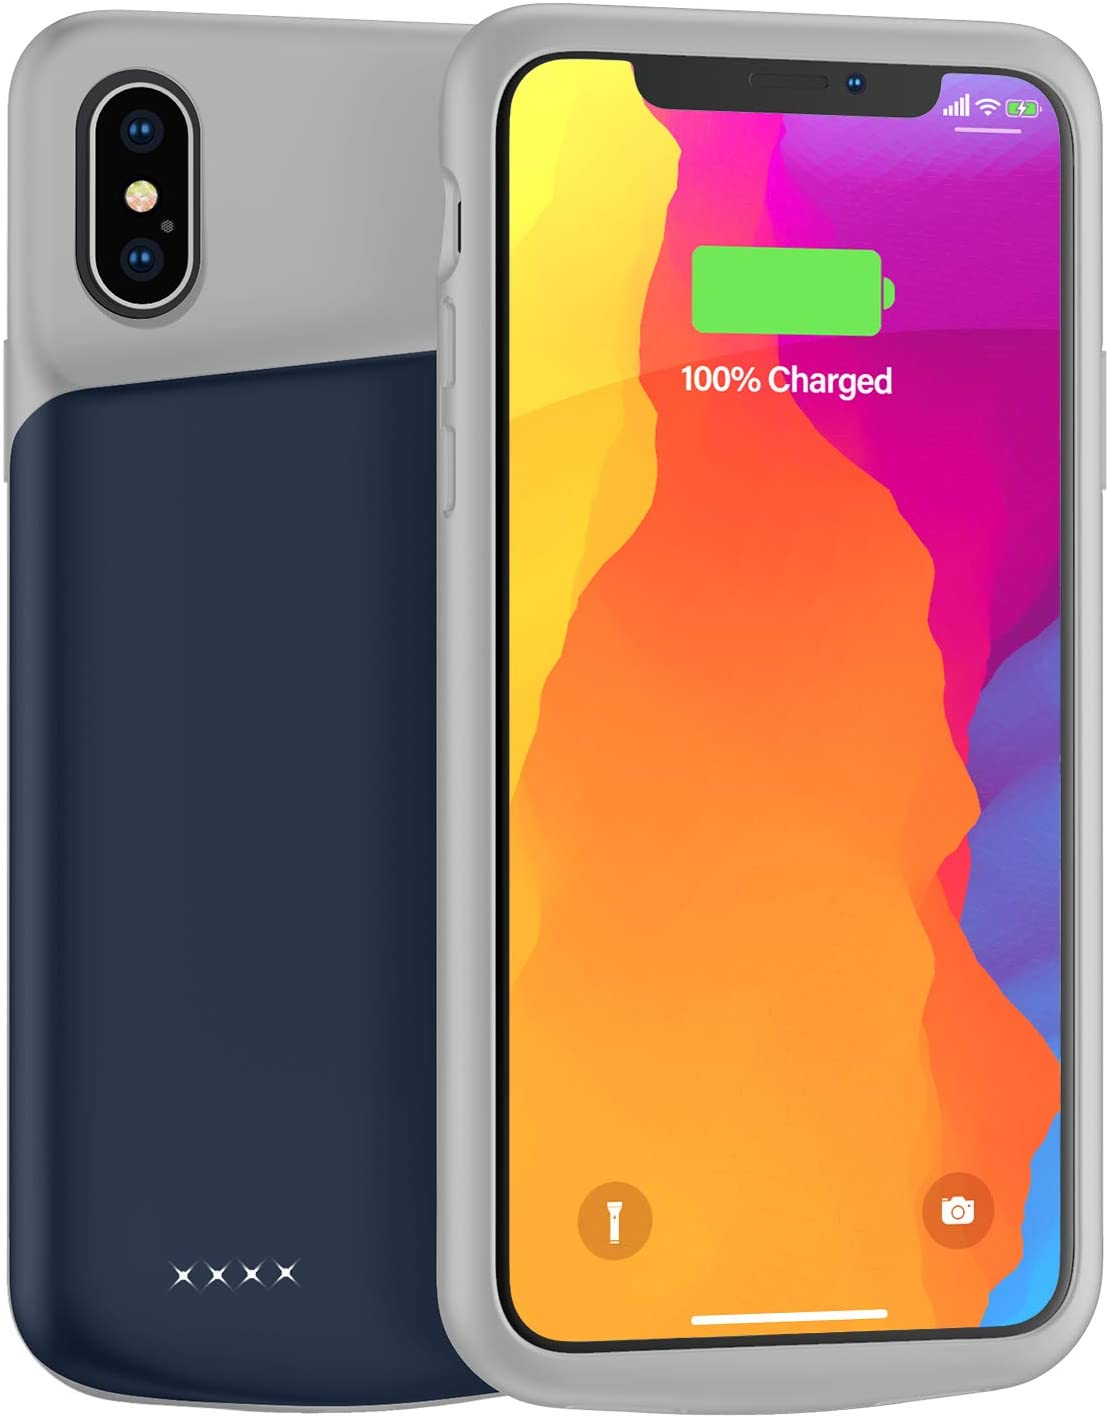 Lonlif Battery Case for iPhone X/XS/10, 4000mAh Ultra Slim Rechargeable Protective Charging Case, Extended Portable Battery Pack Charger Case Compatible with iPhone X/XS/10 (Blue)